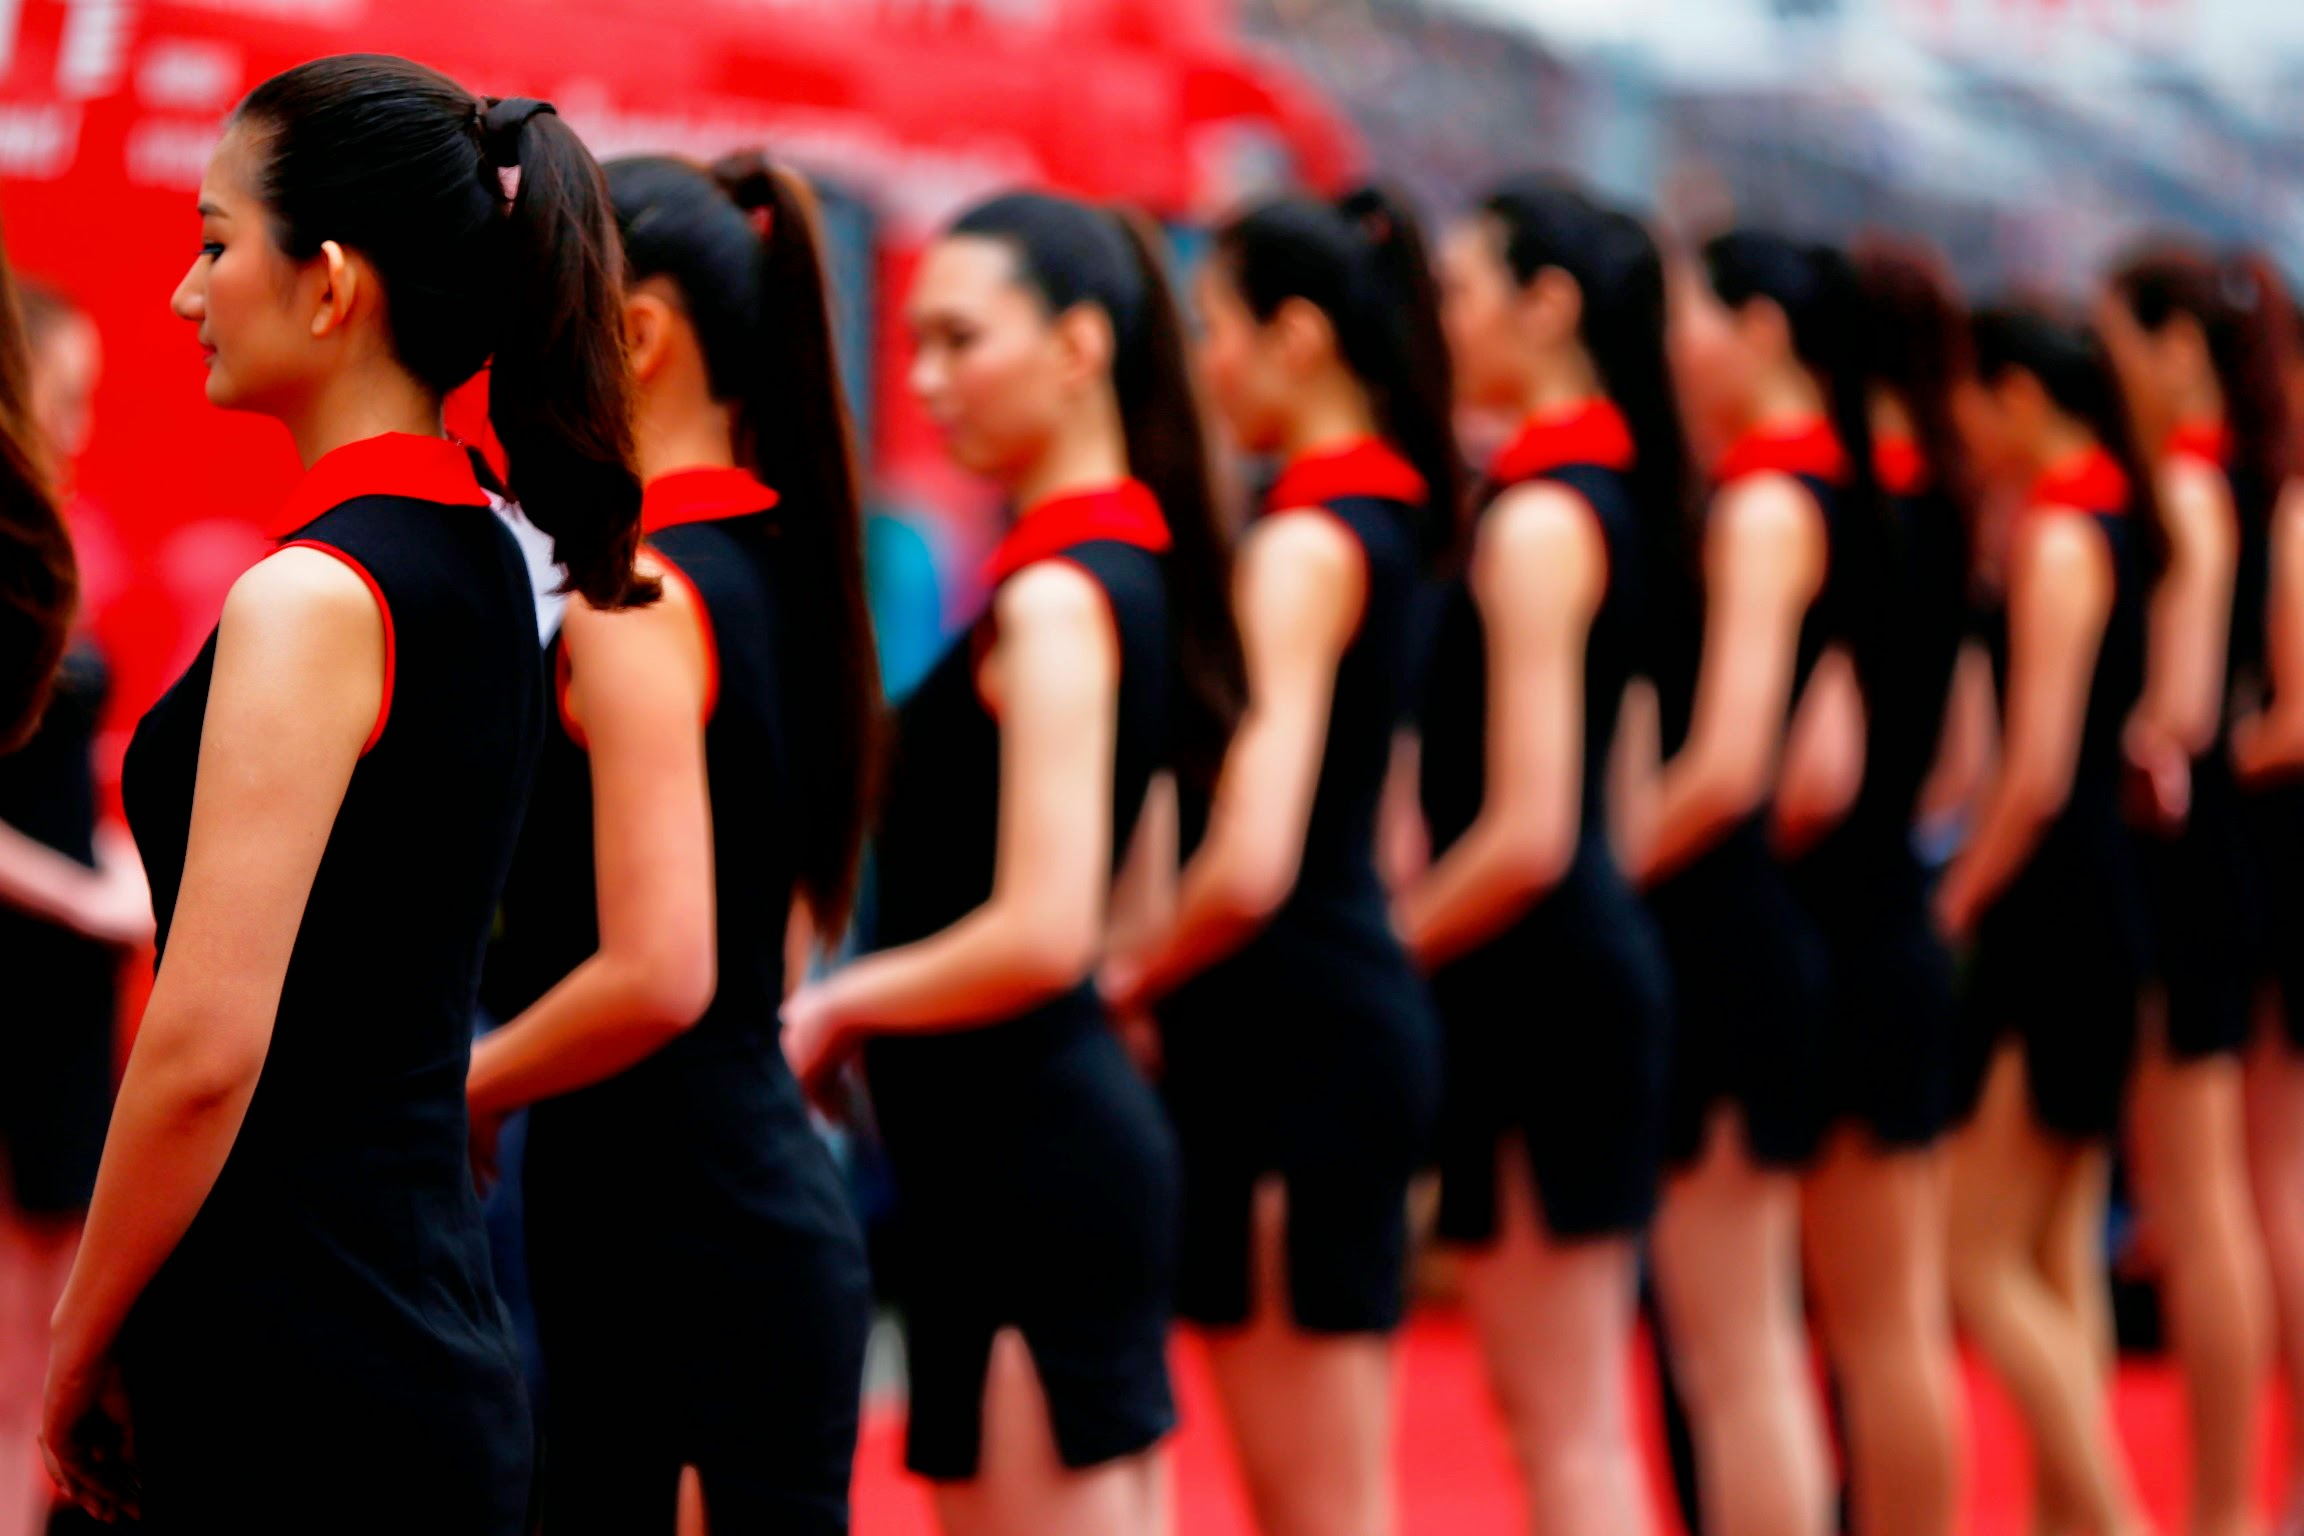 grid girls hd wallpapers - photo #35